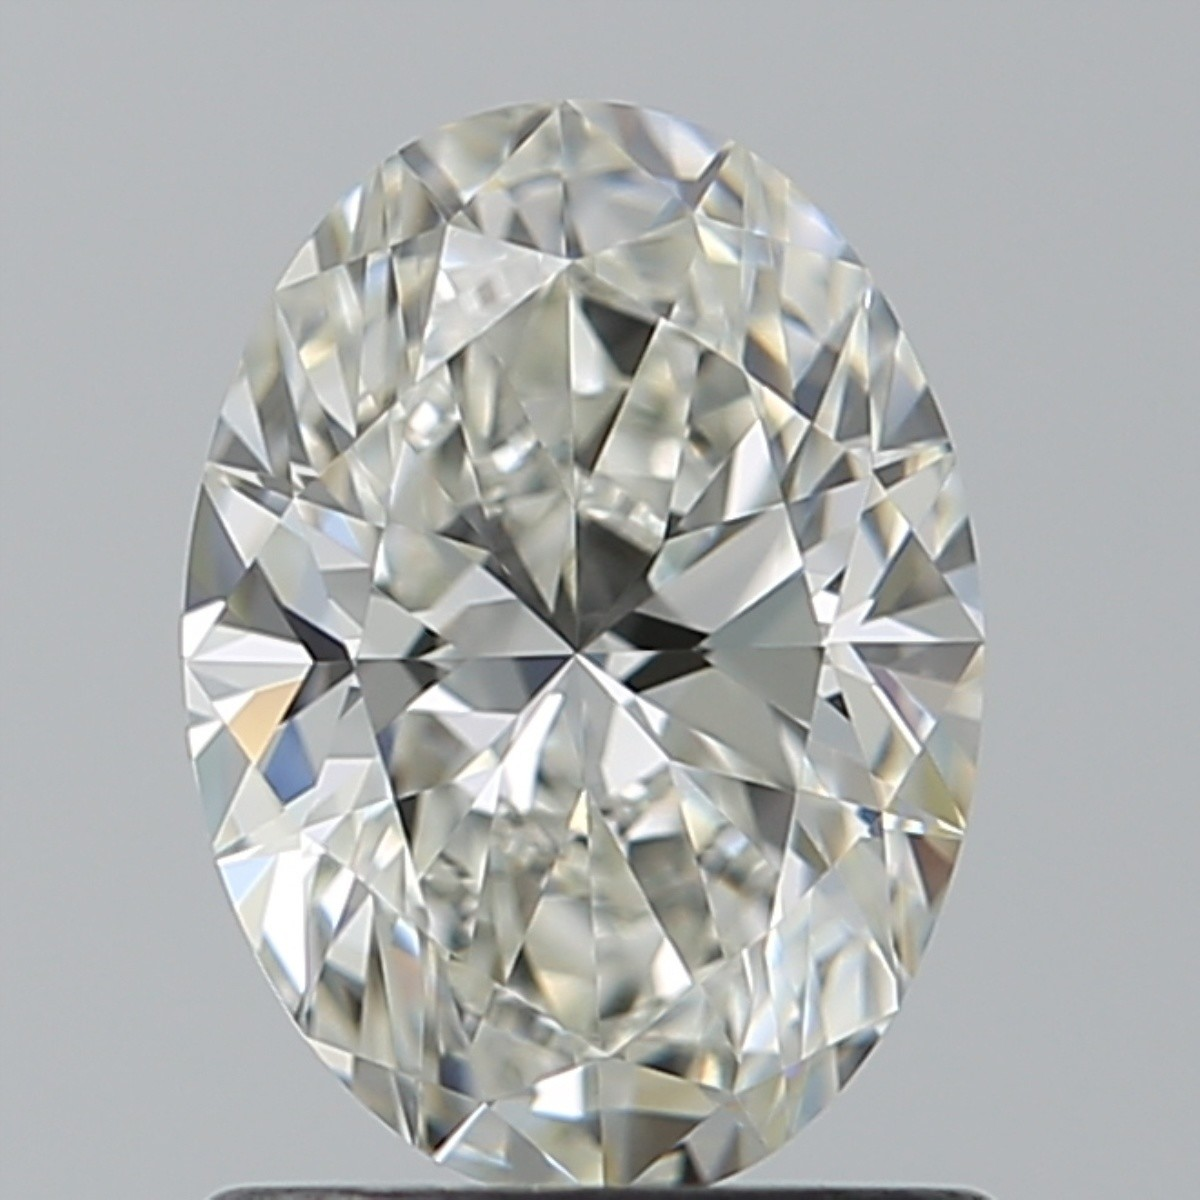 1.02 Carat Oval Diamond (I/VVS1)